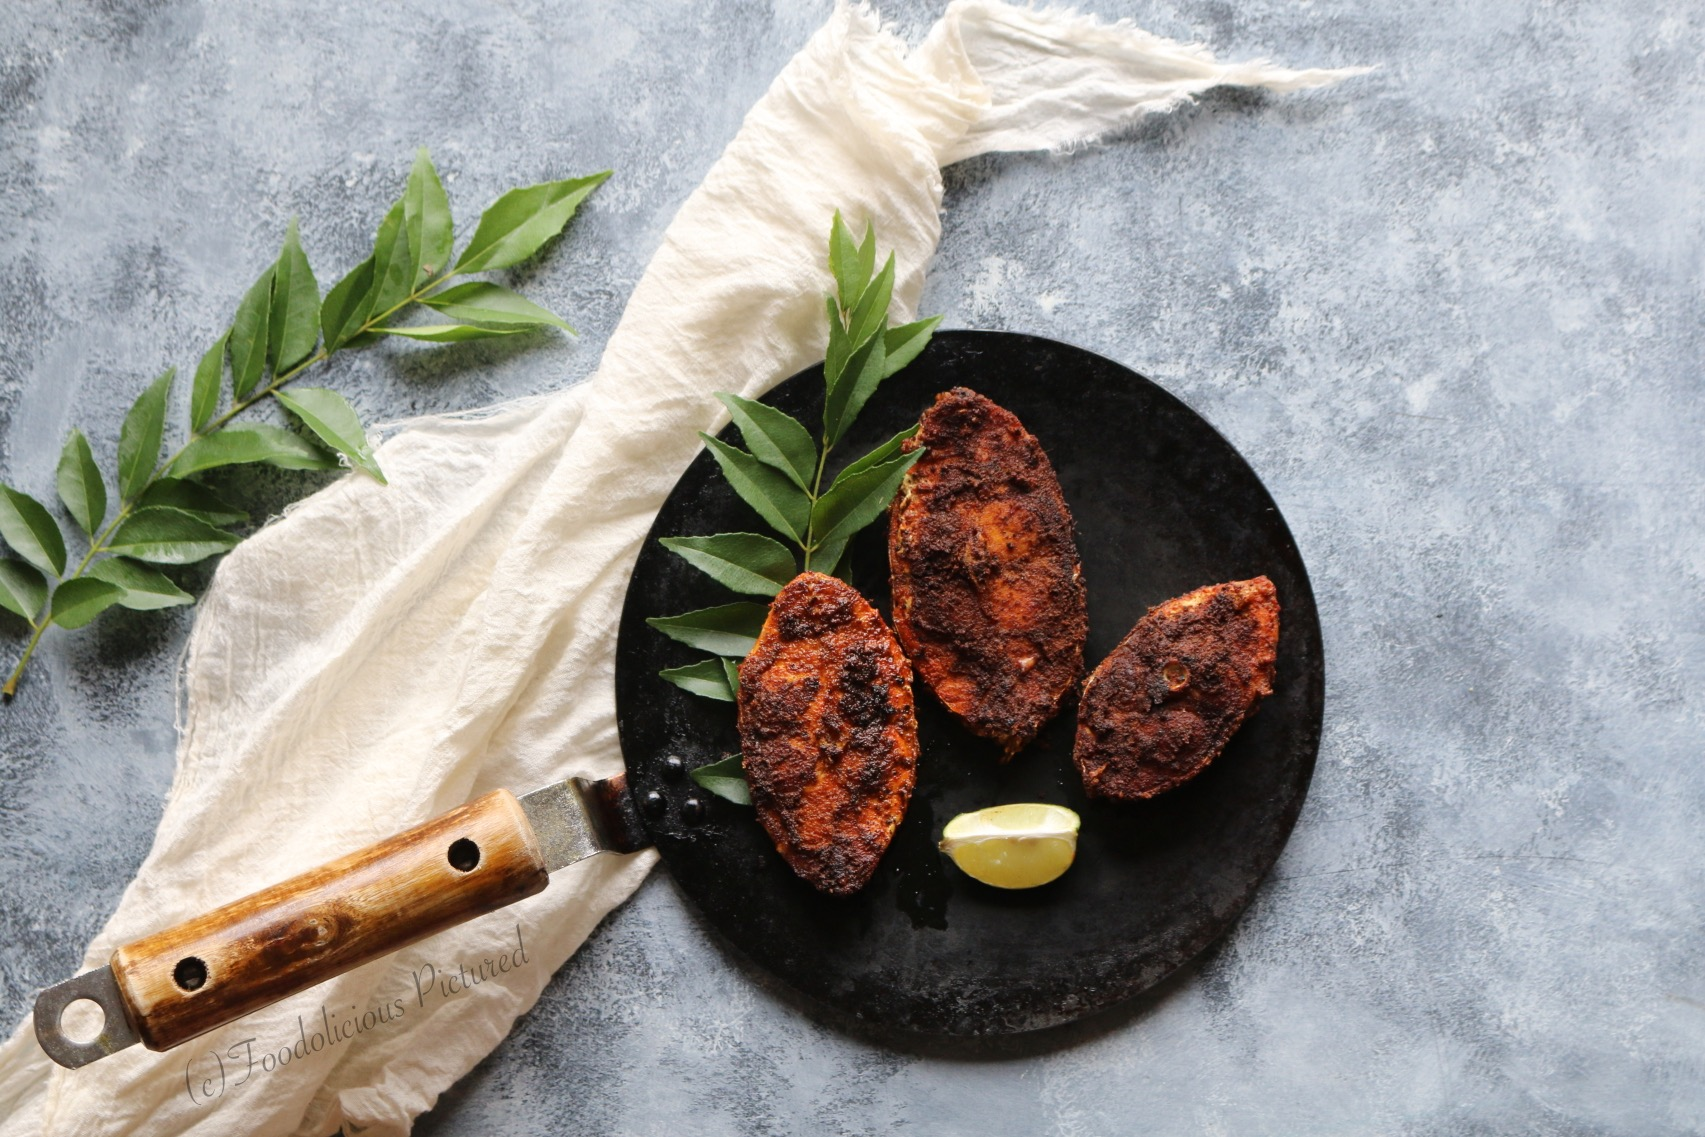 Meen varuthathu fish fry kerala style foodolicious for How do you fry fish